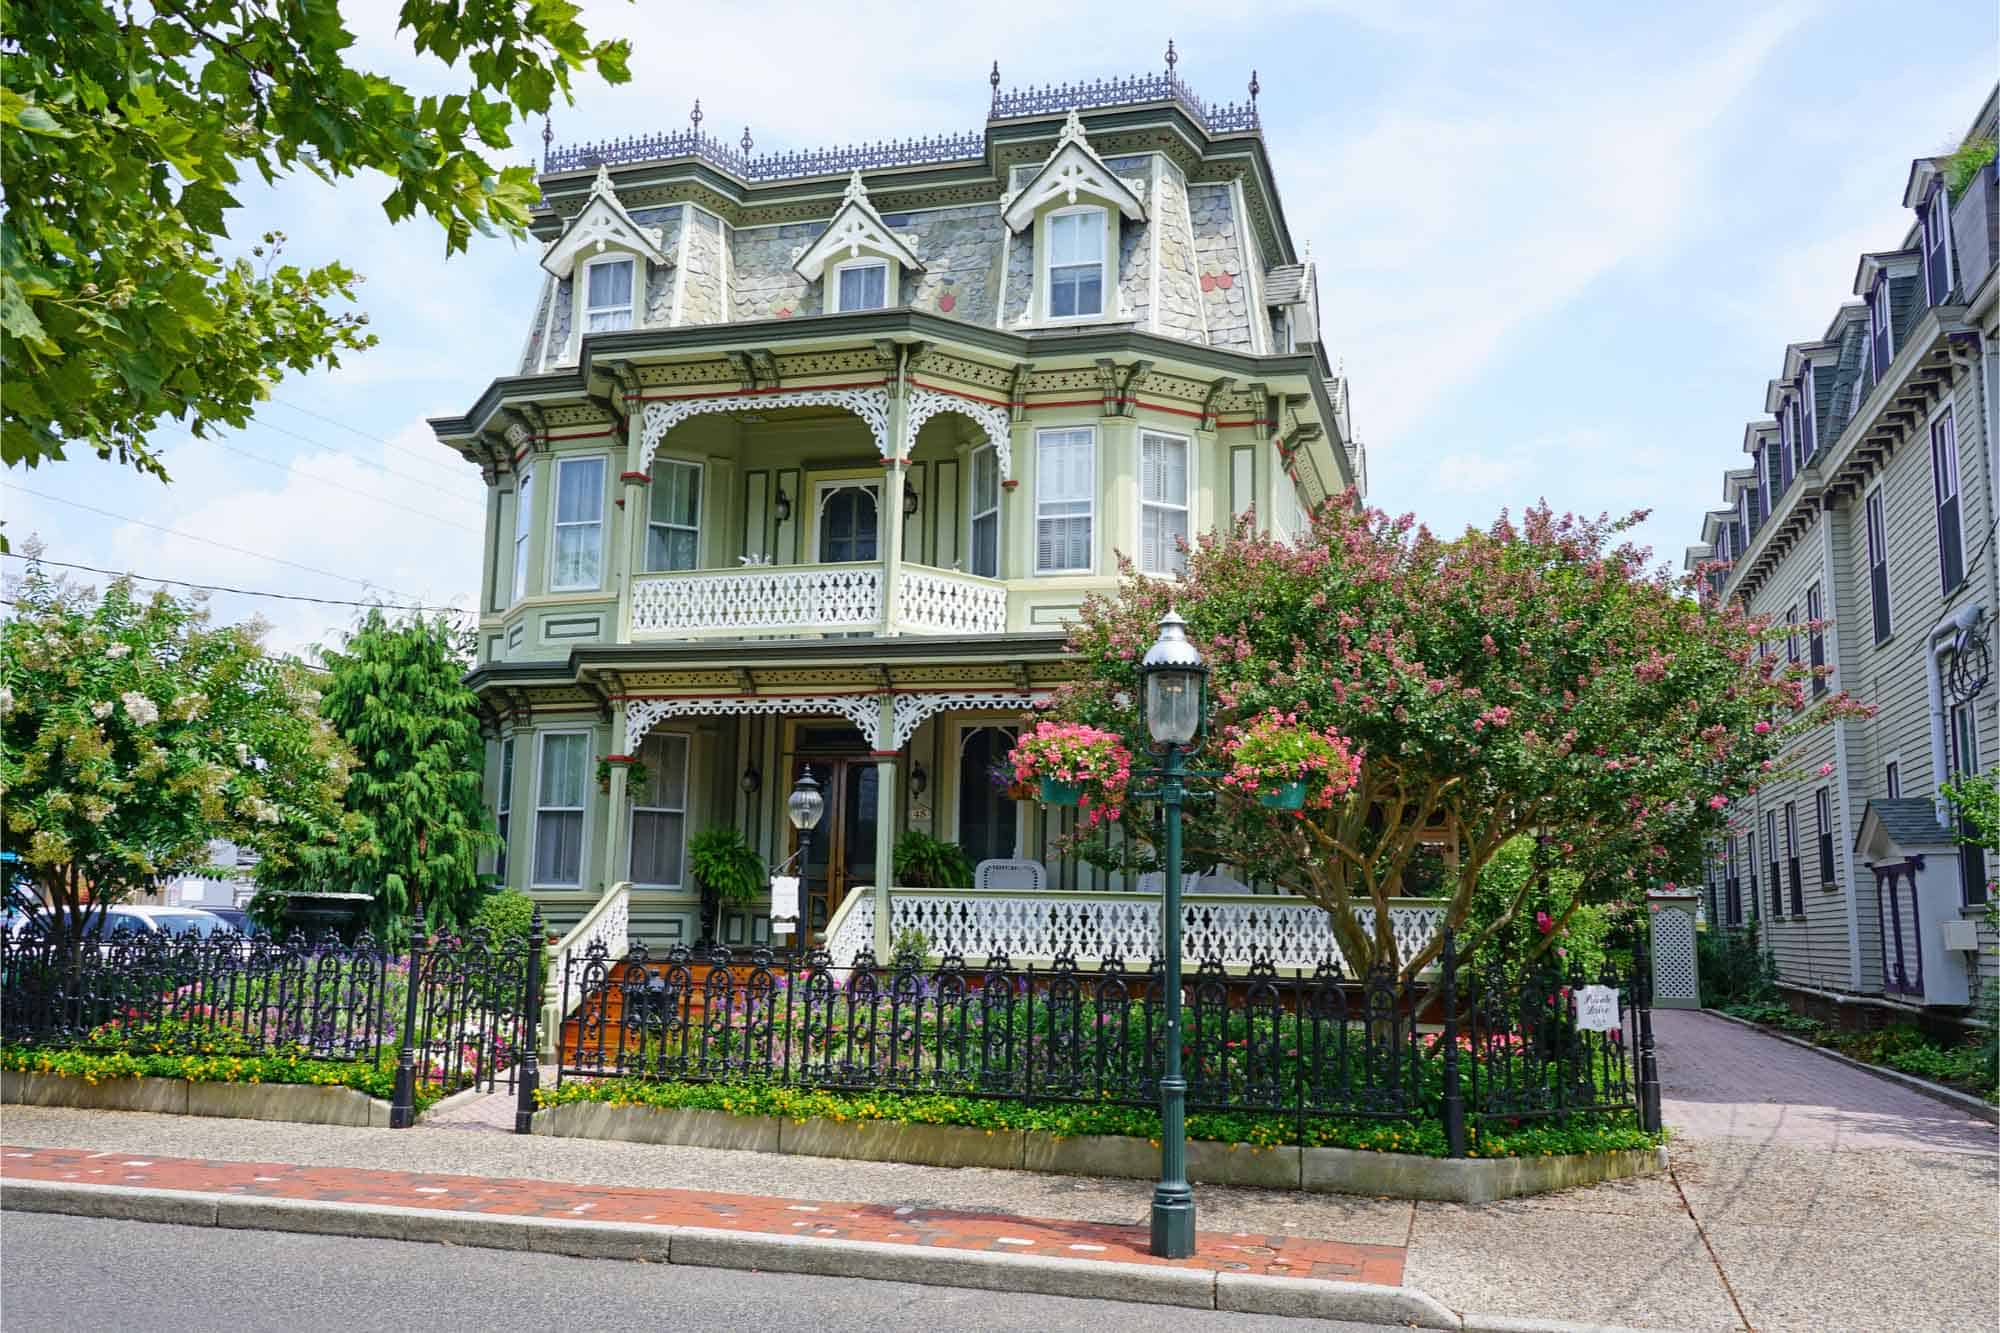 Green, three-story Victorian mansion in New Jersey